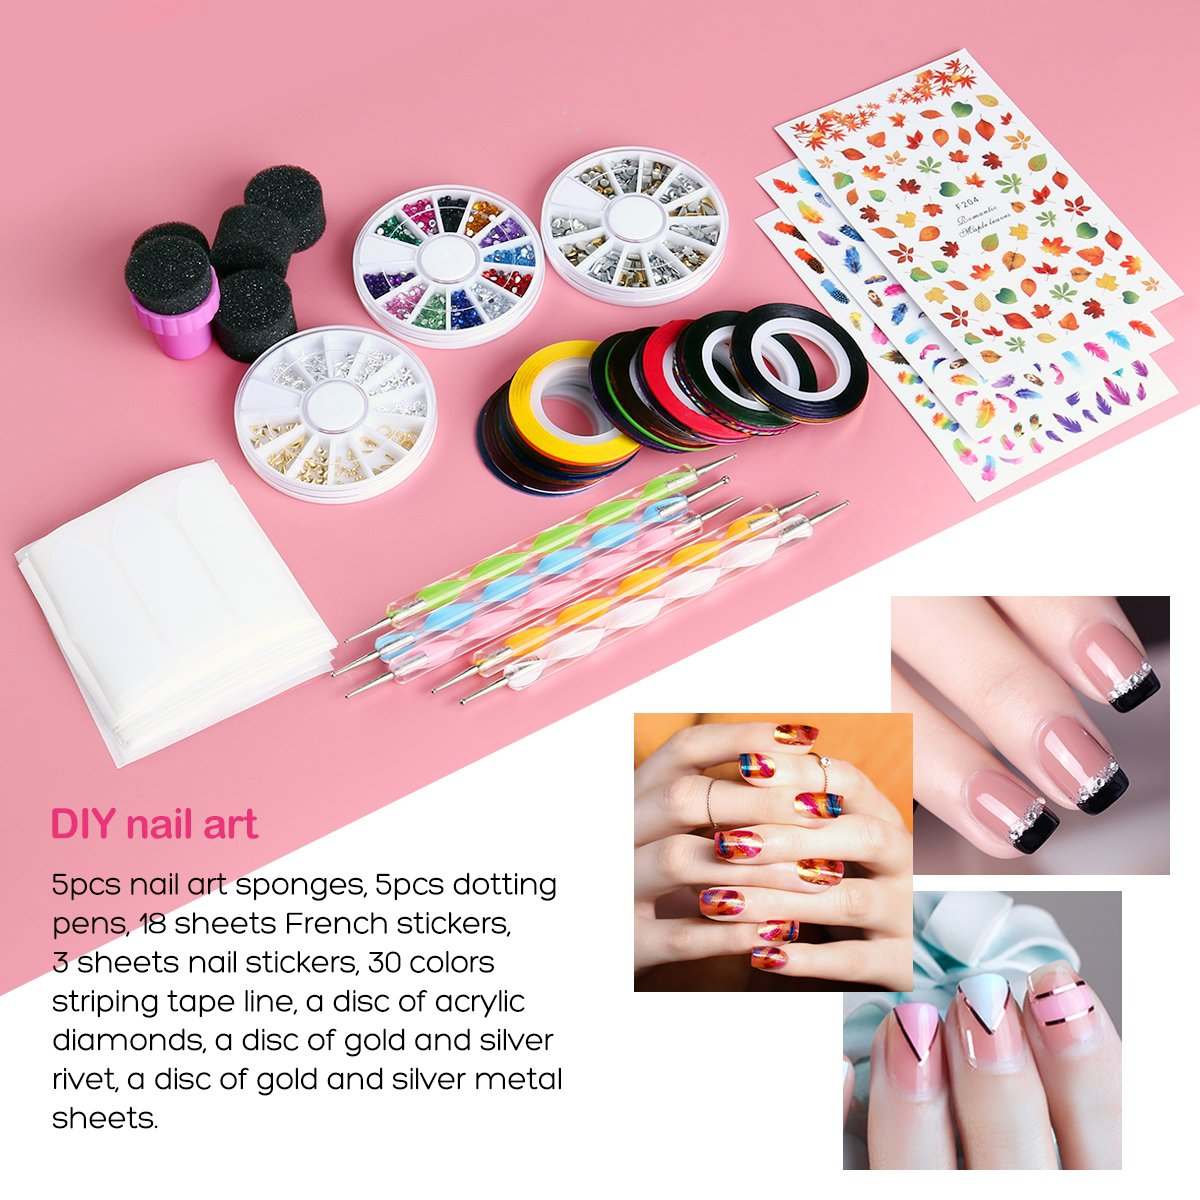 Amazon etereauty nail art kit with 18 tape line nail stickers amazon etereauty nail art kit with 18 tape line nail stickers 30 rolls striping tape 5 dotting pens 3 nail art stickers gradient nails sponges prinsesfo Image collections